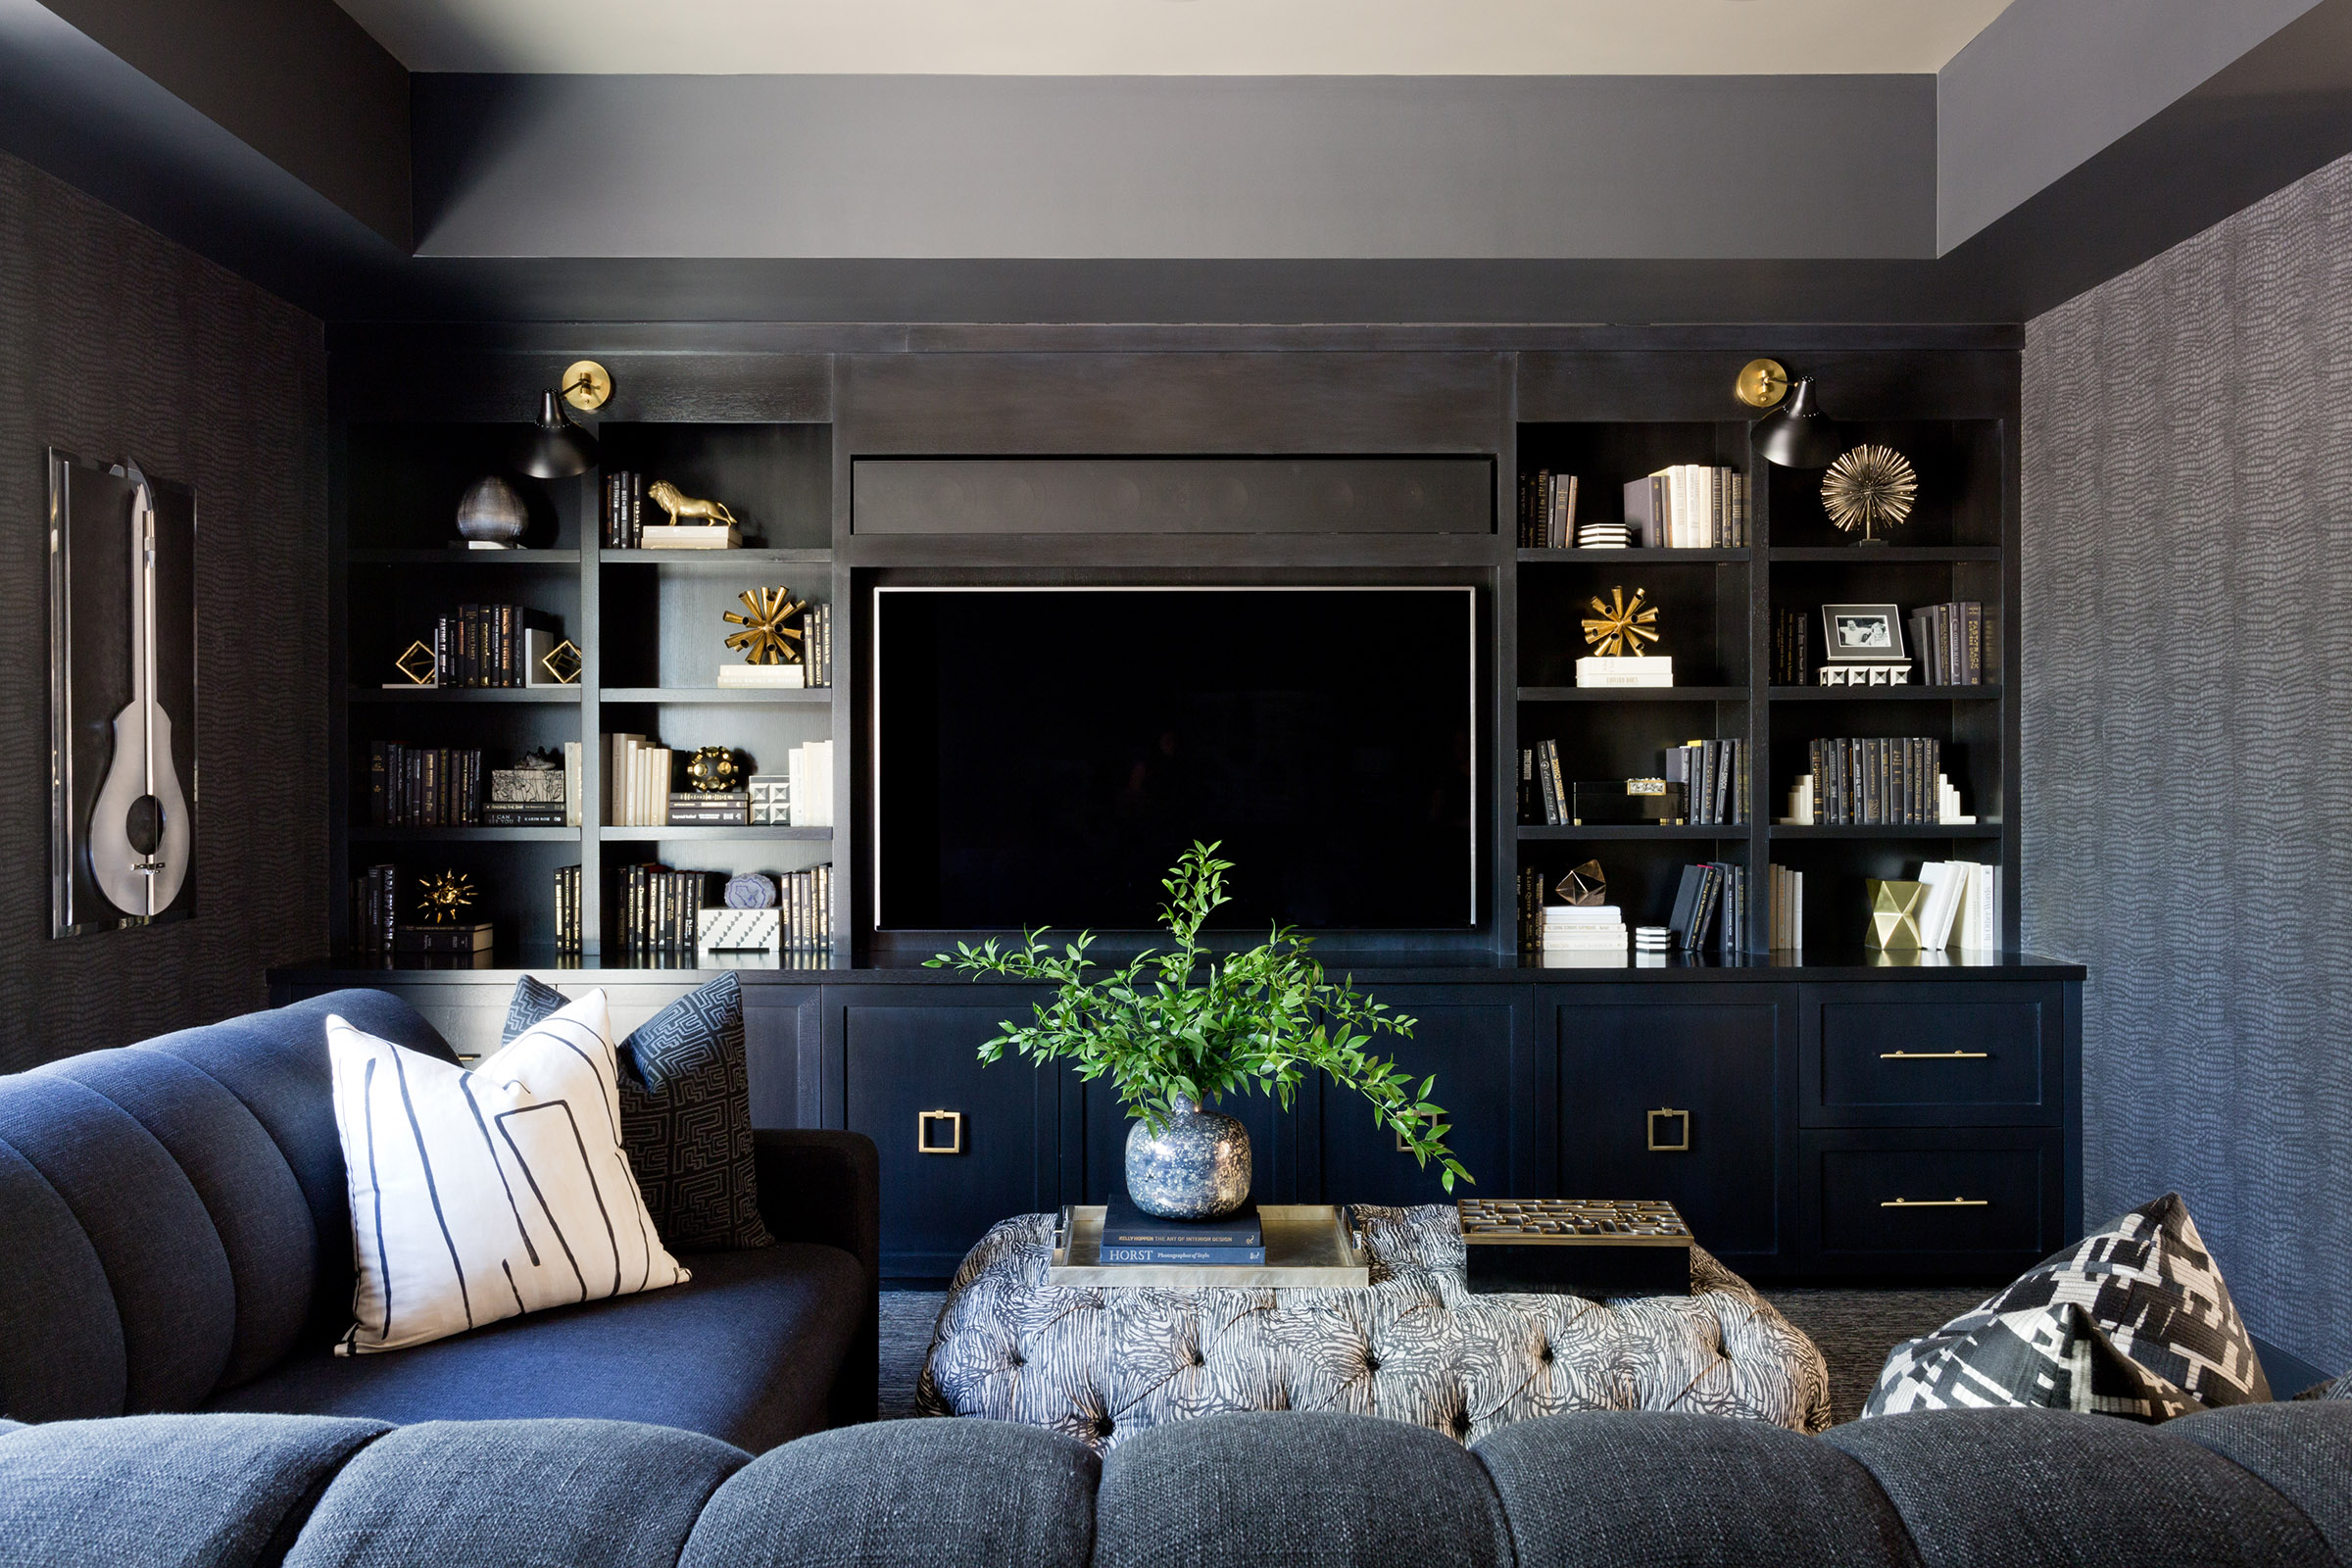 This stunning dramatic media room by   Jenn Feldman Designs   is a beautiful example of painting the wall behind the television a dark color. The bookshelves flanking the television are expertly styled in a limited contrasting color palette with creams and golds adding interest and warmth to the design.